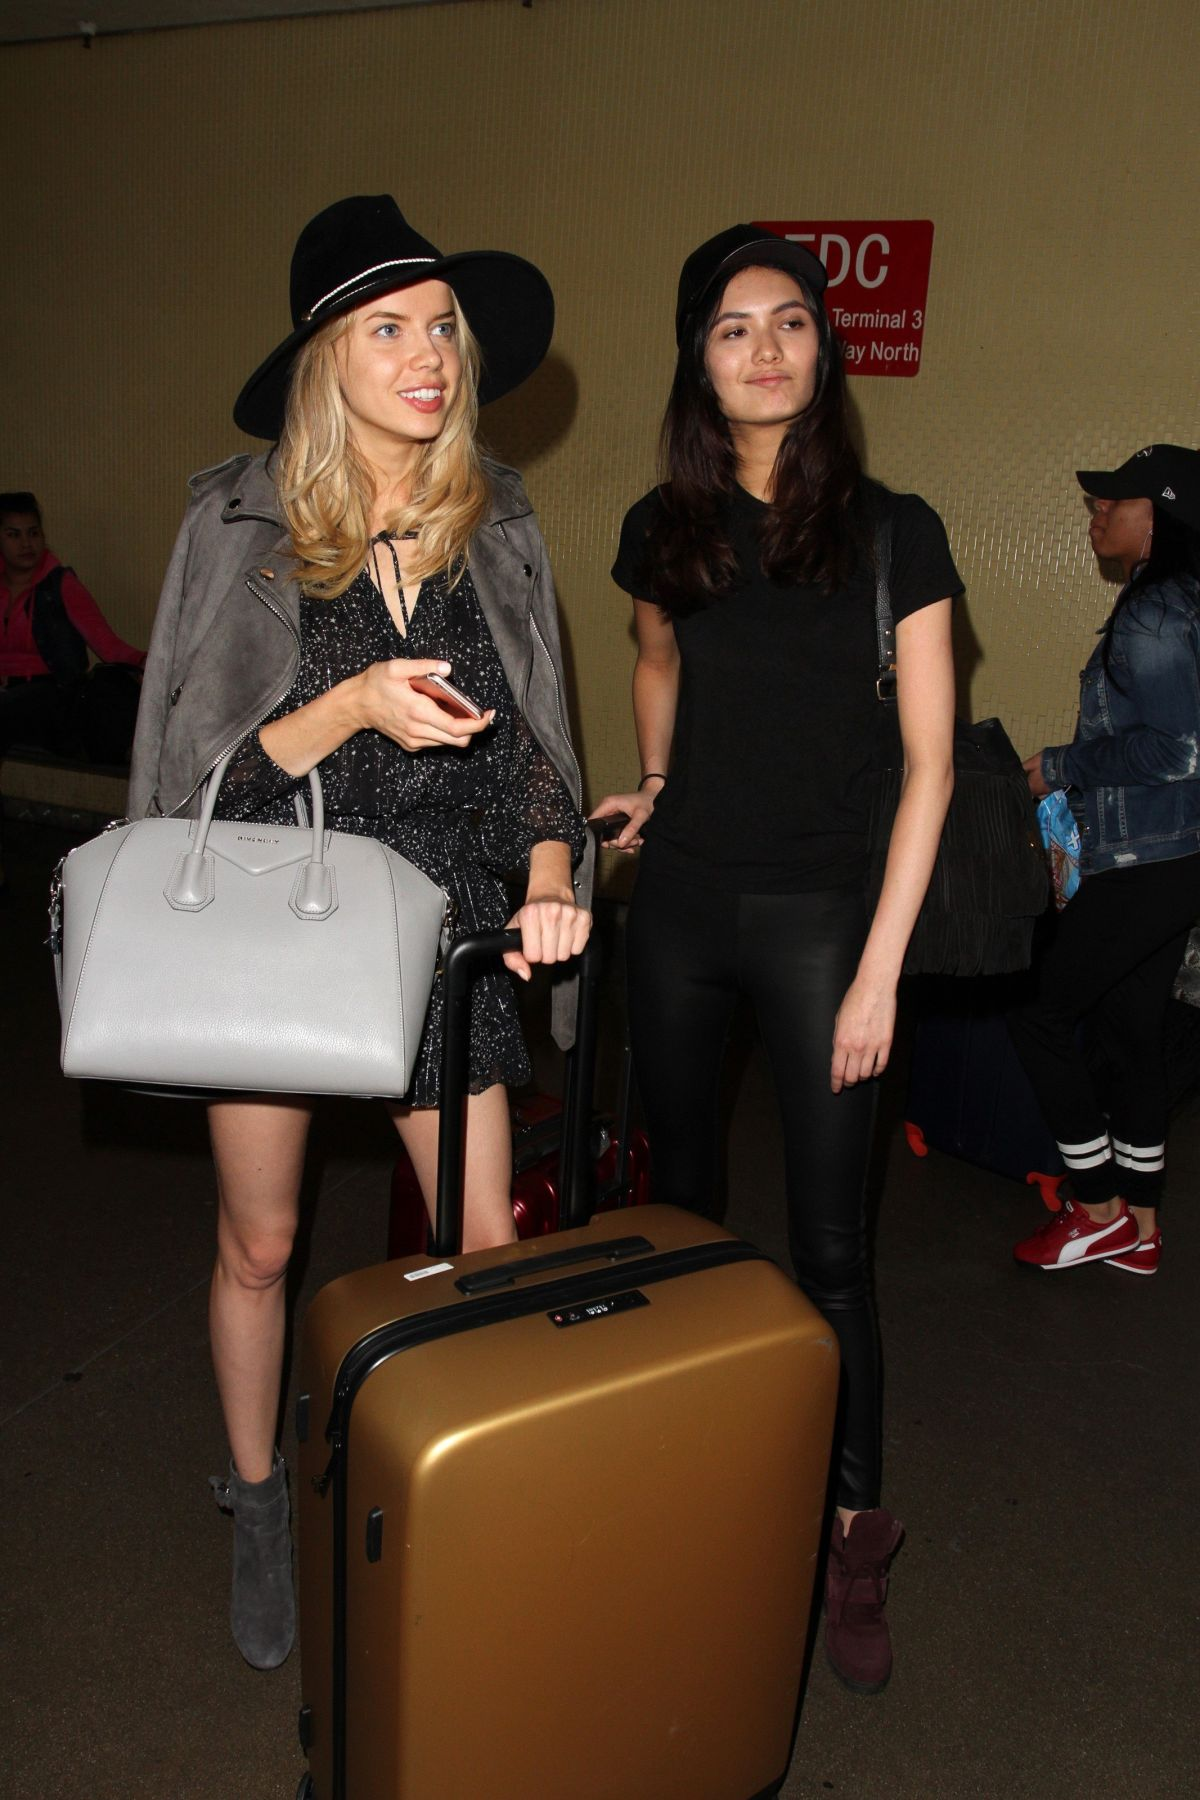 LOUISA WARWICK and JESSICA BARTA at LAX Airport in Los Angeles 03/16/2017